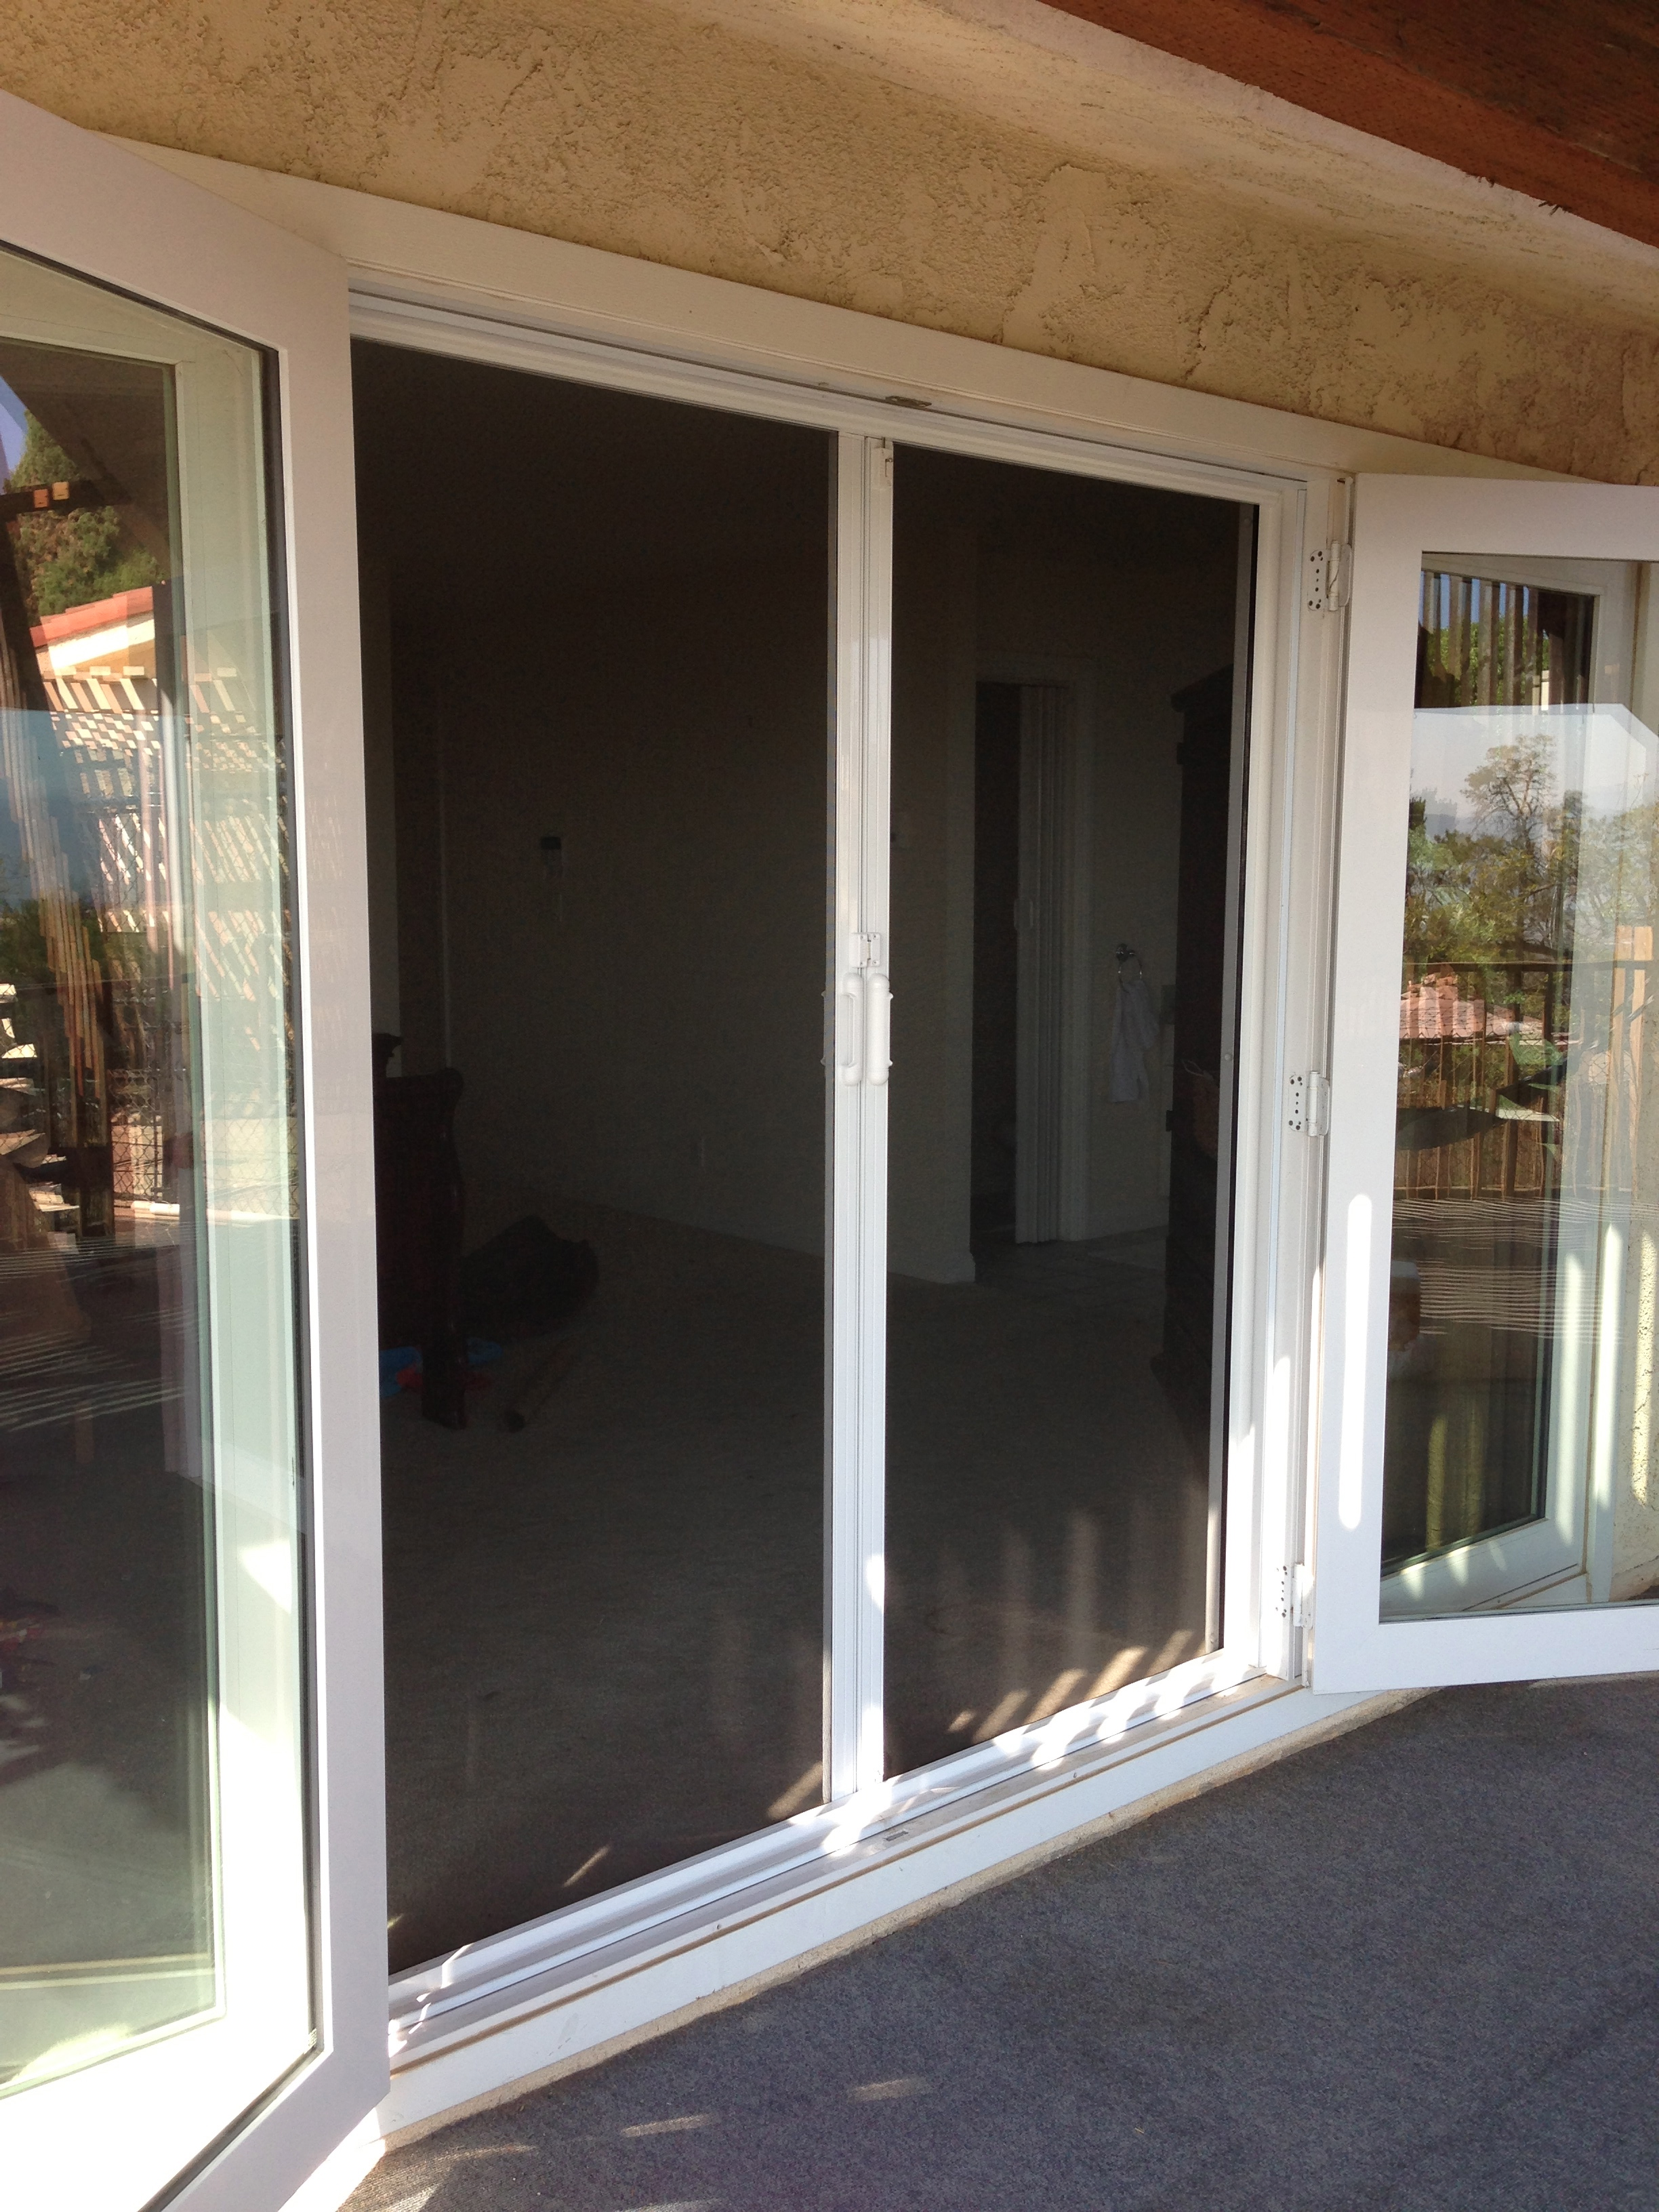 Retractable screen doors screen door and window screen for What is the best retractable screen door